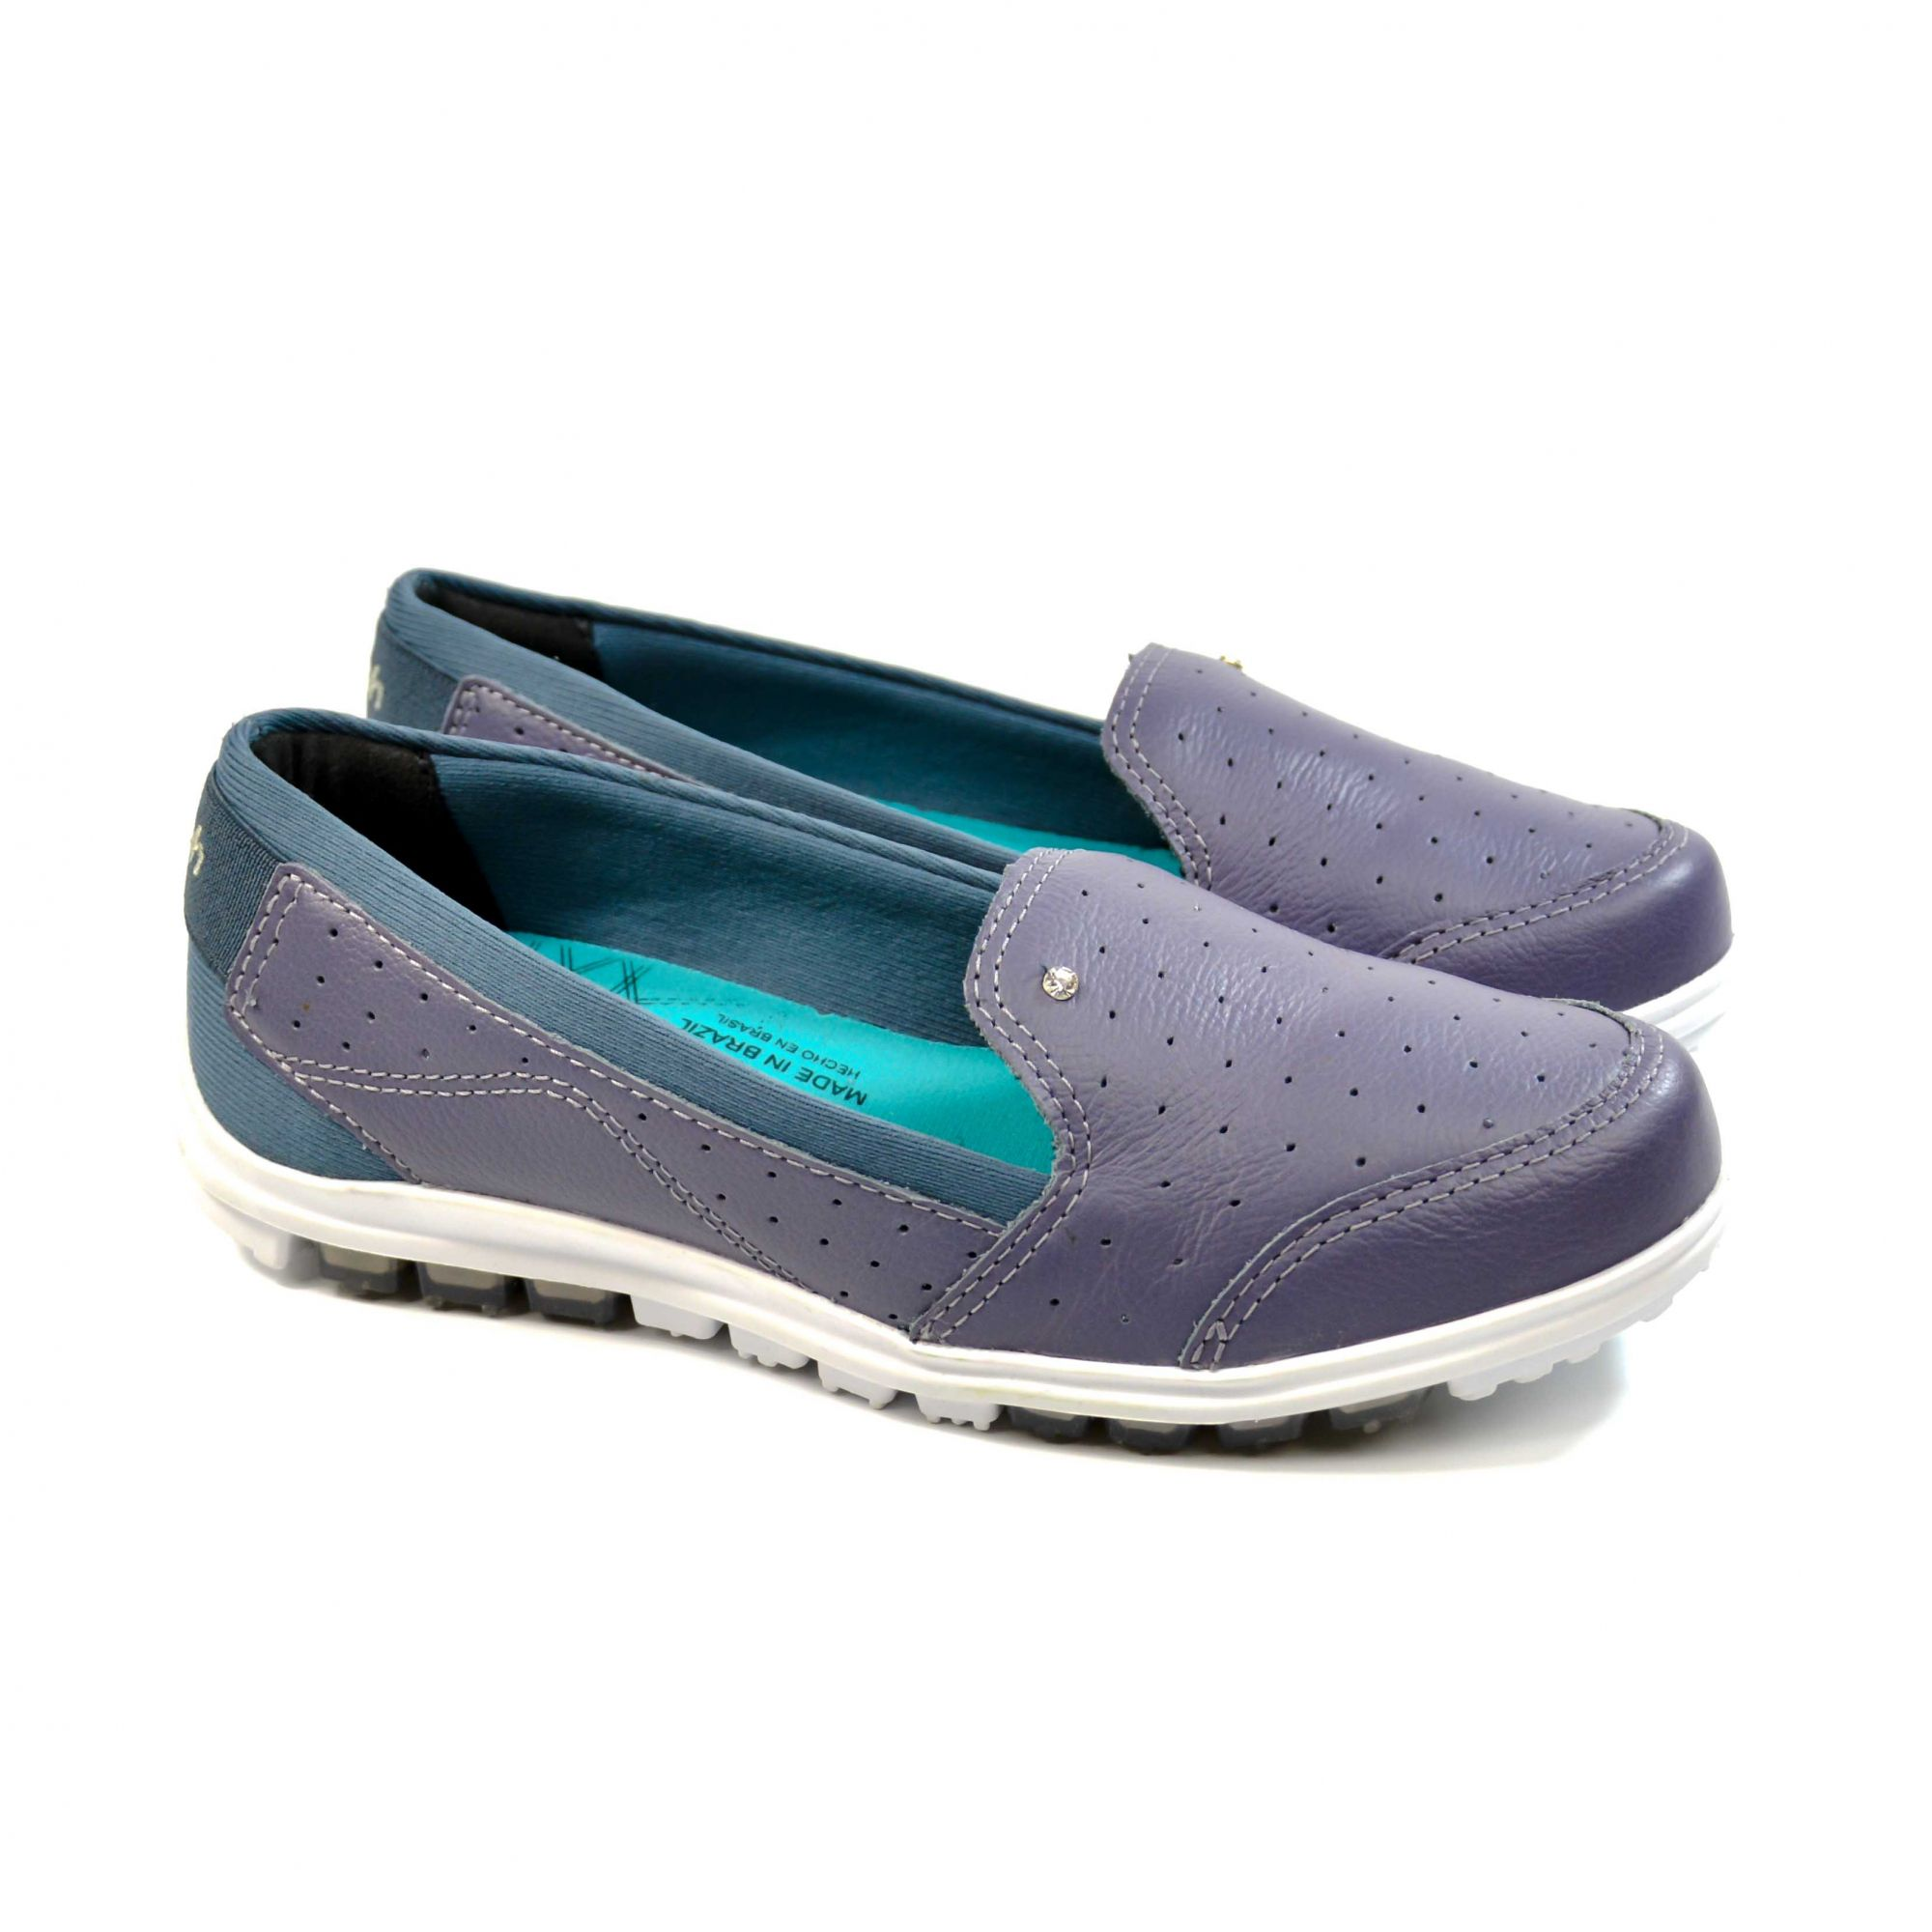 TENIS SLIP ON C0523-0005 DENIN ORFEU KOLOSH 15393